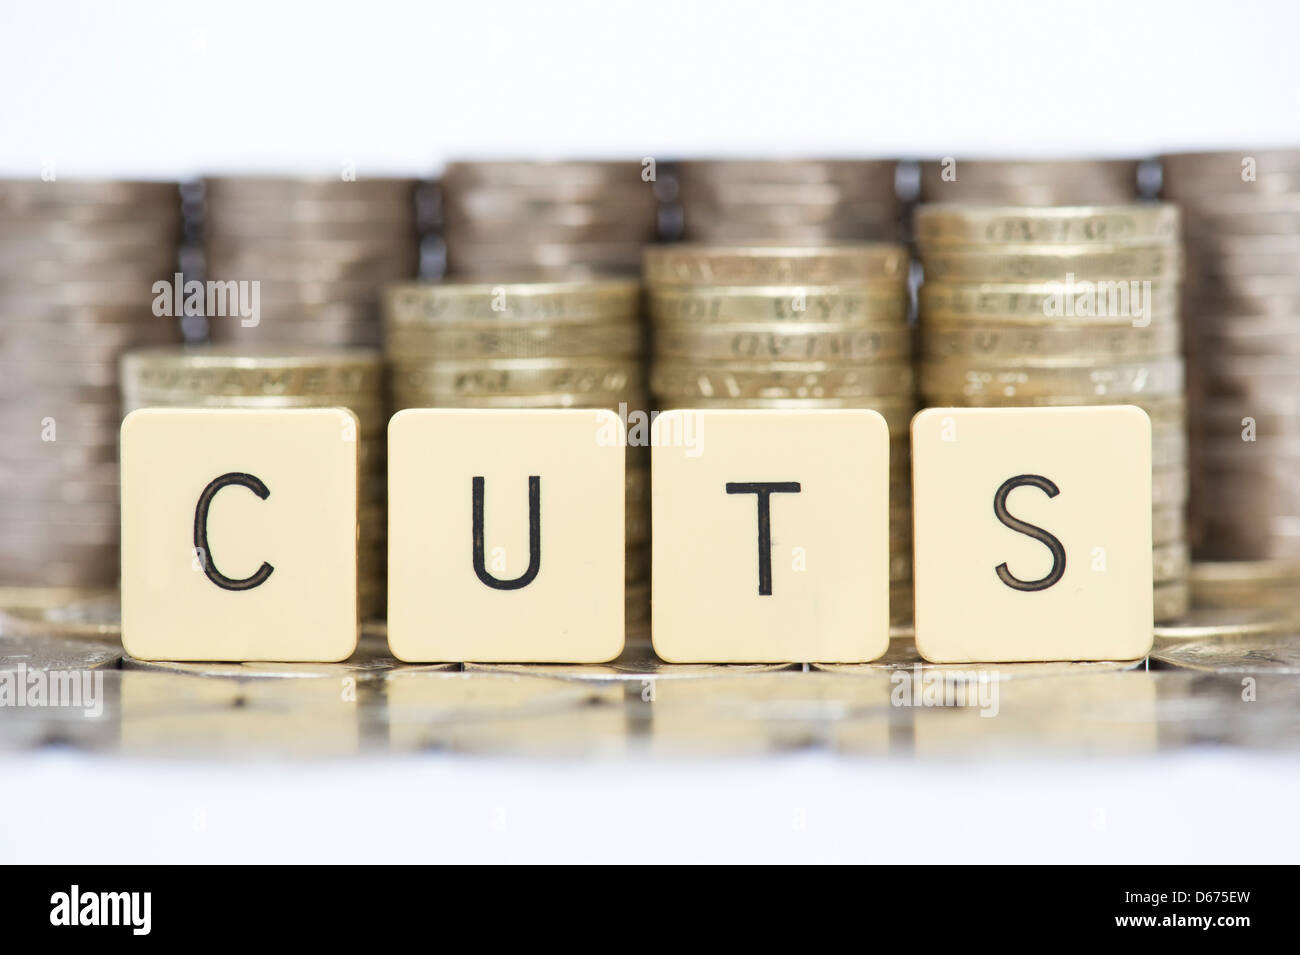 The word CUTS in front of stacks of English twenty pence and one pound coins - Stock Image